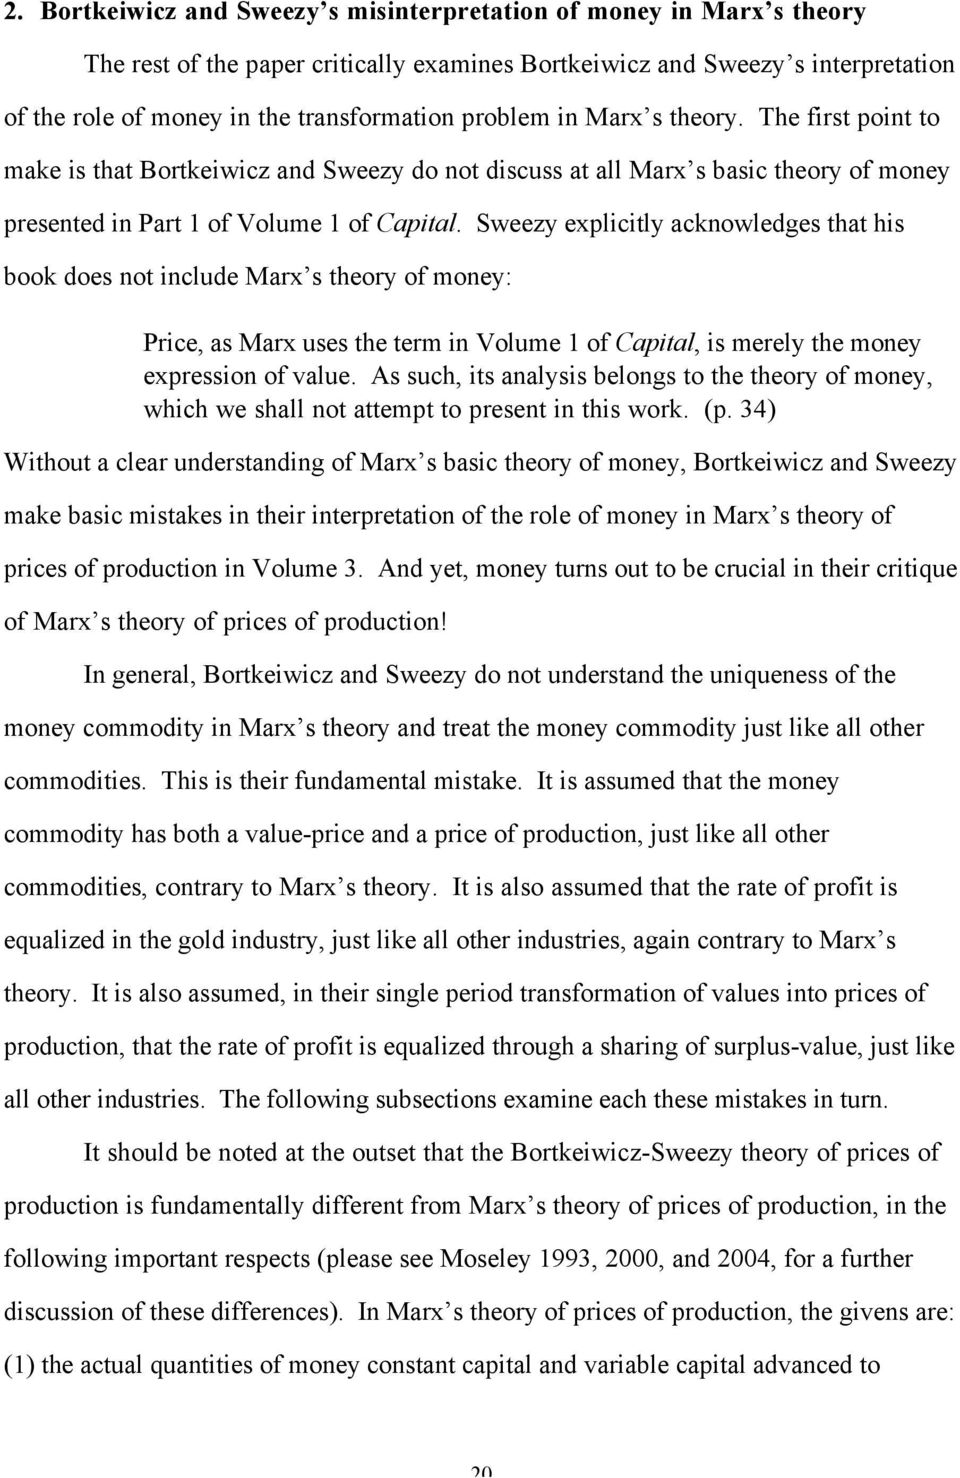 Sweezy explicitly acknowledges that his book does not include Marx s theory of money: Price, as Marx uses the term in Volume 1 of Capital, is merely the money expression of value.